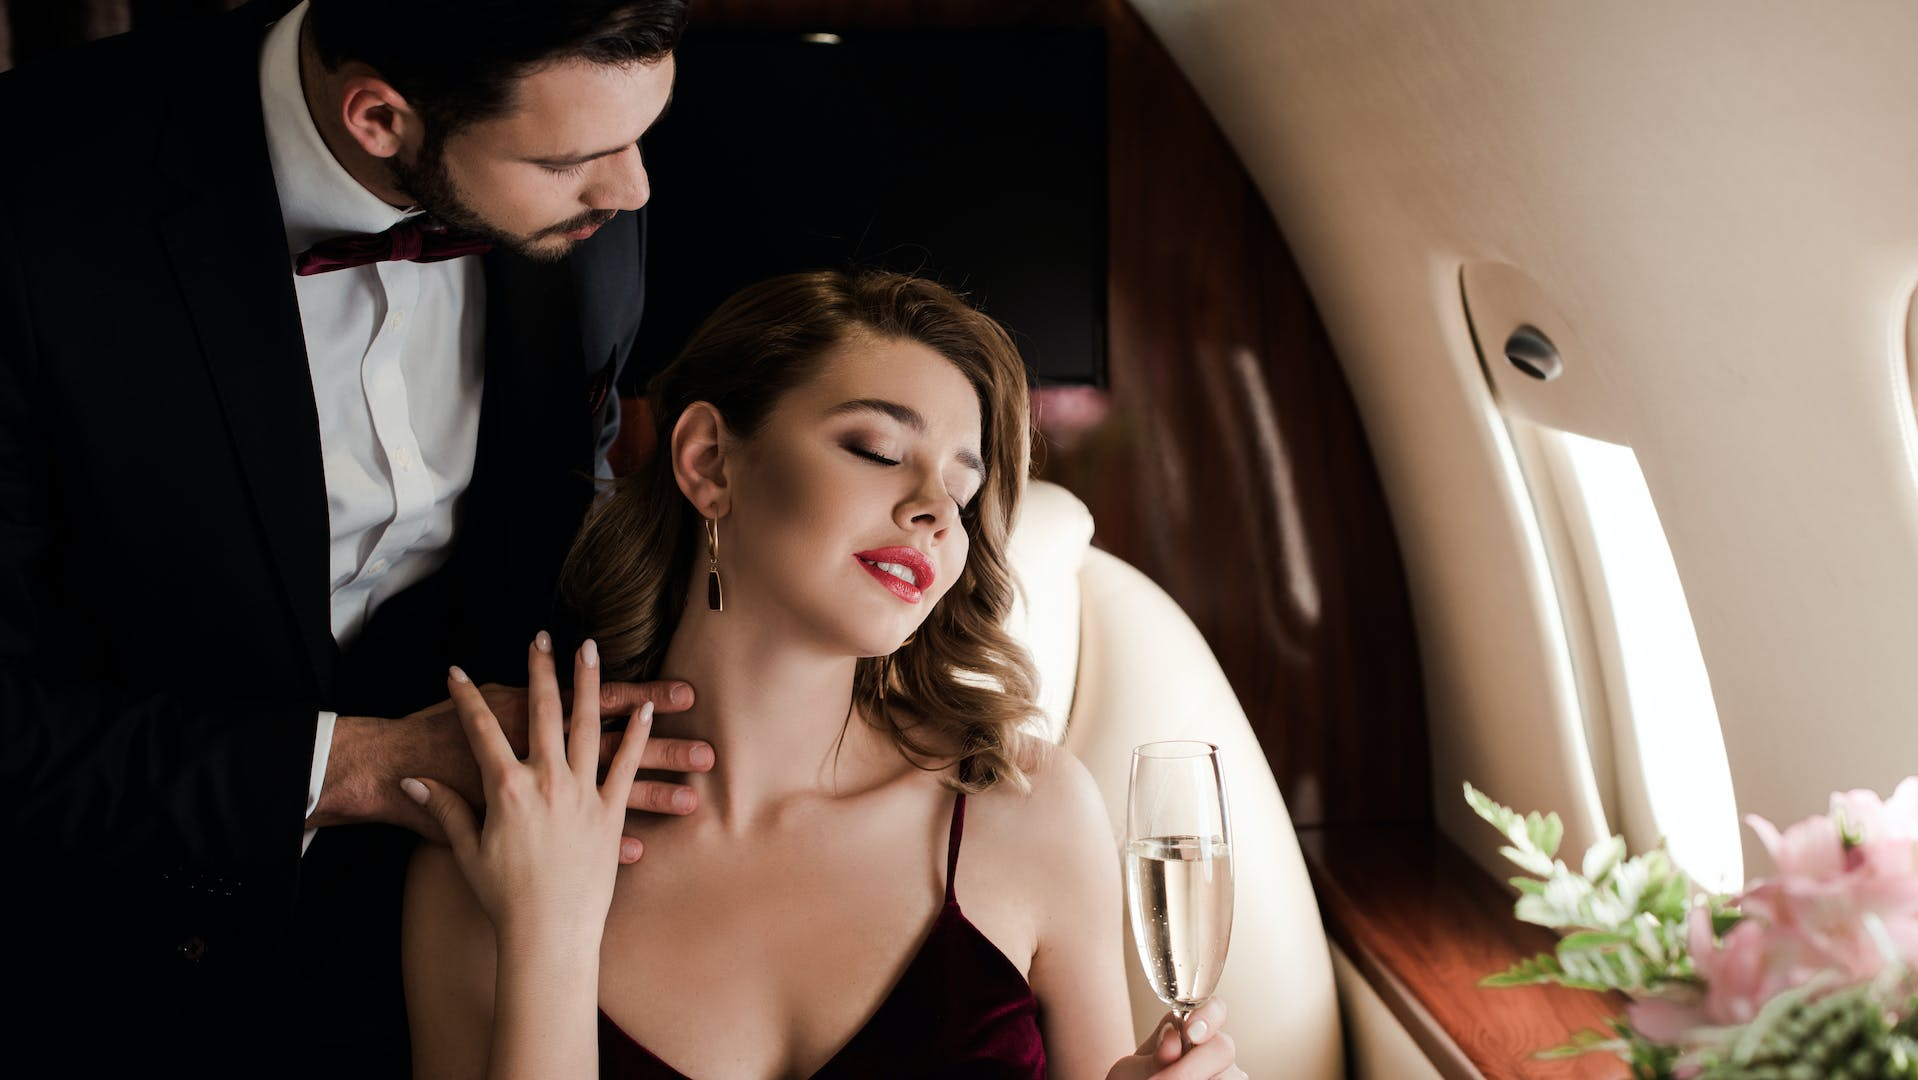 Make the trip as luxurious as the wedding destination when you book a private charter plane.